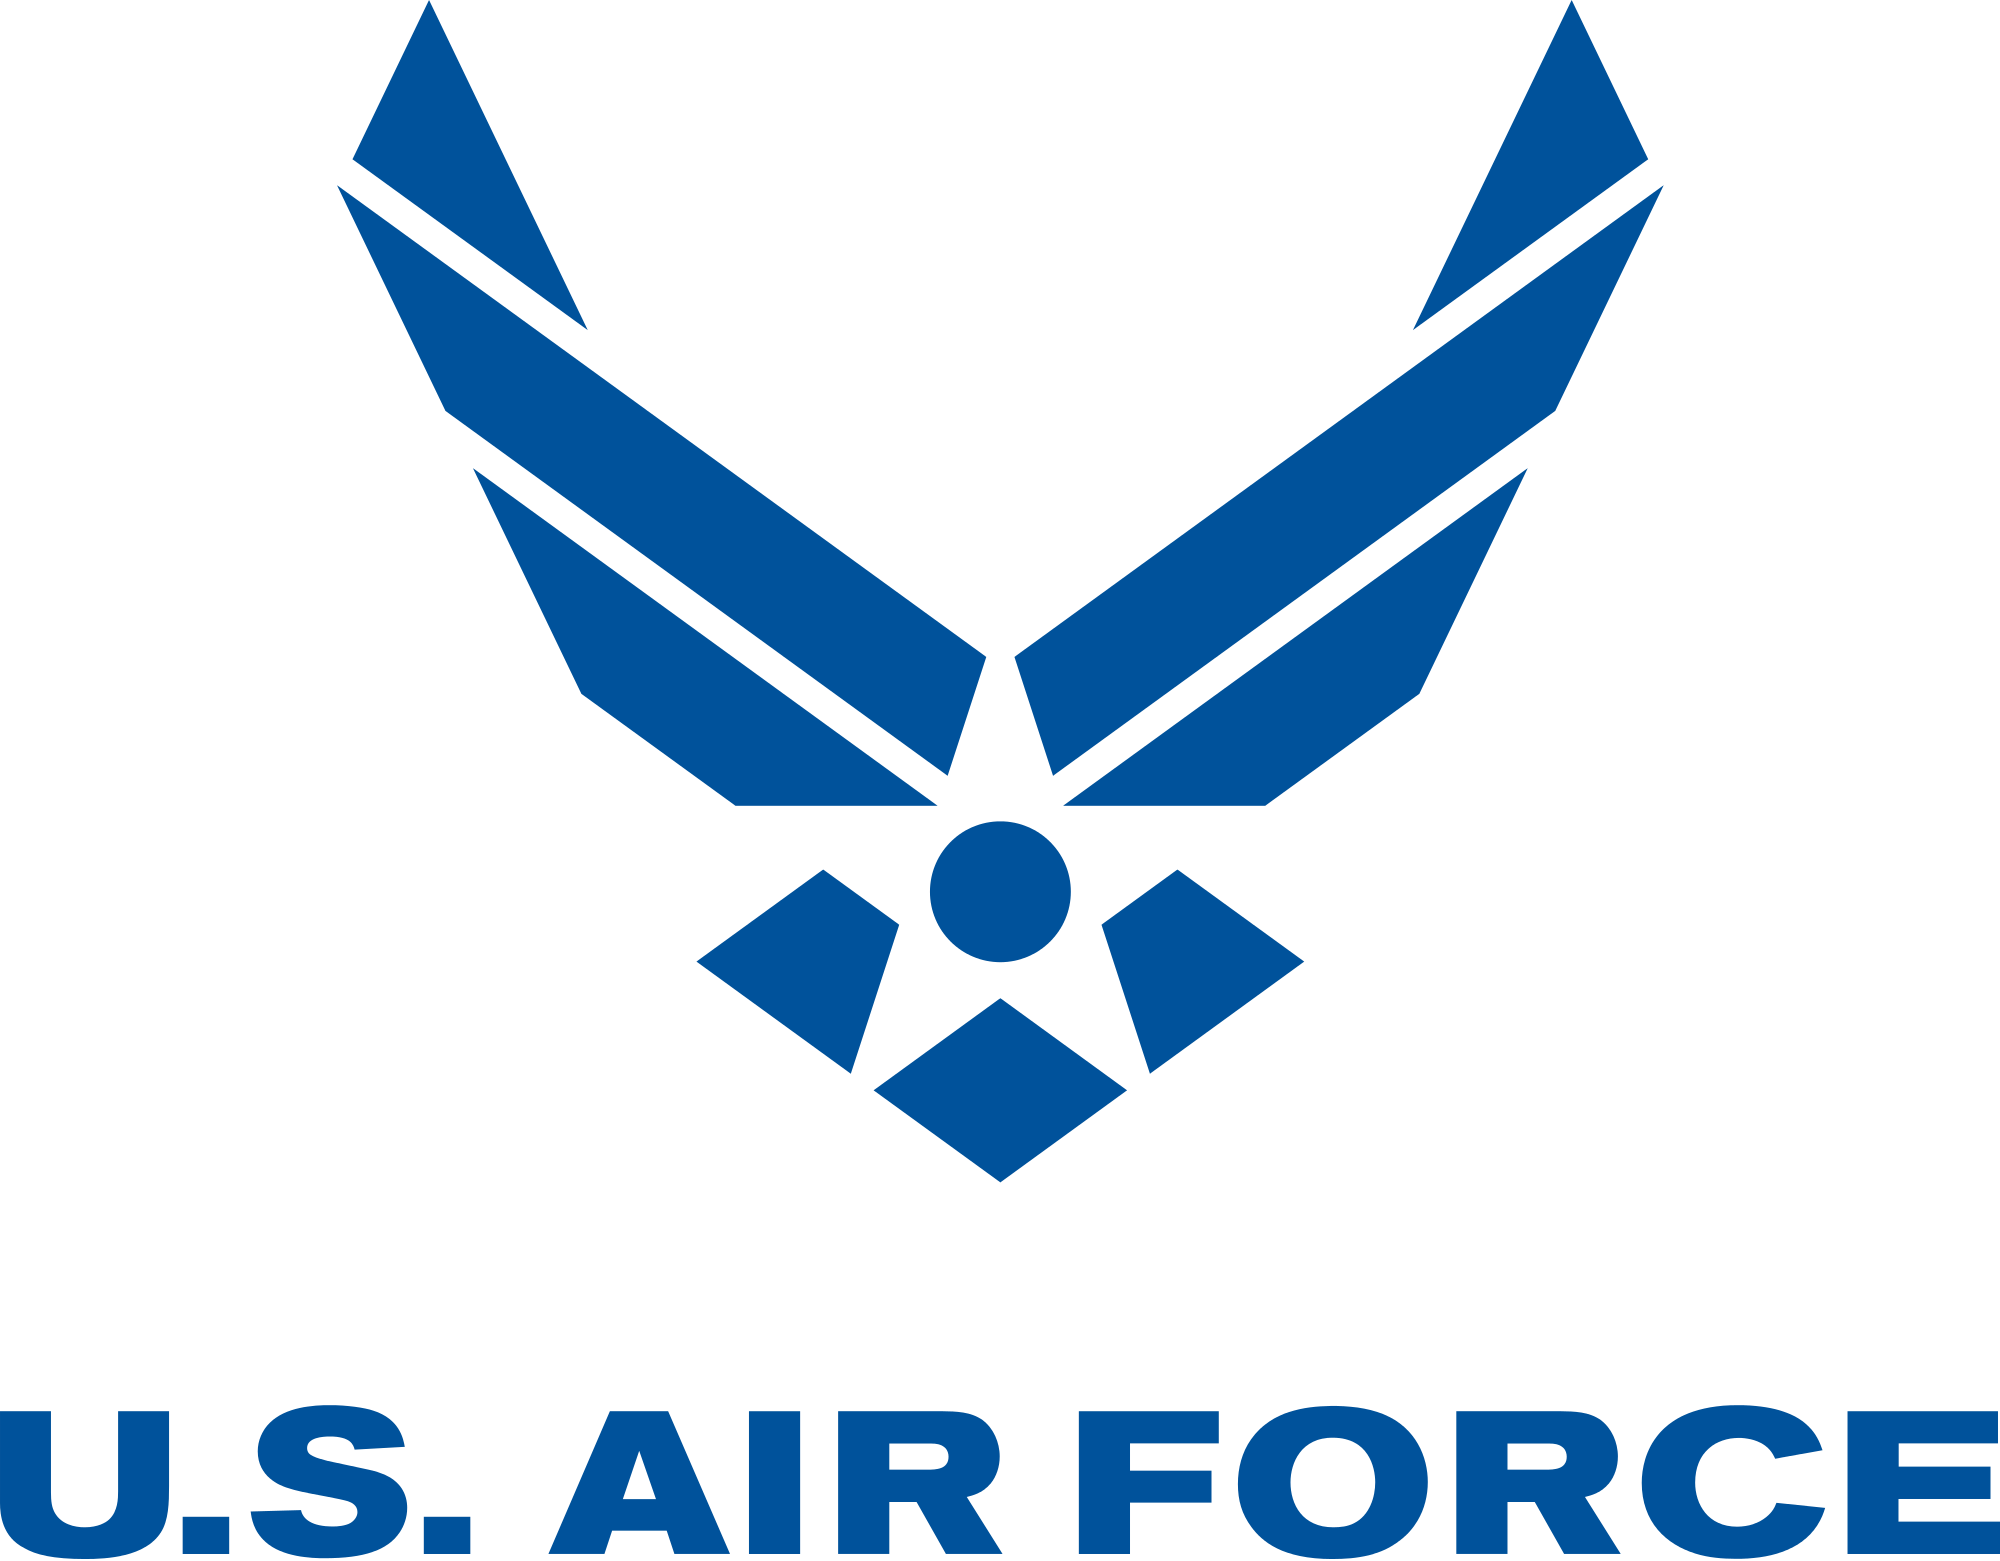 Air force logo png. Us airforce transparent stickpng